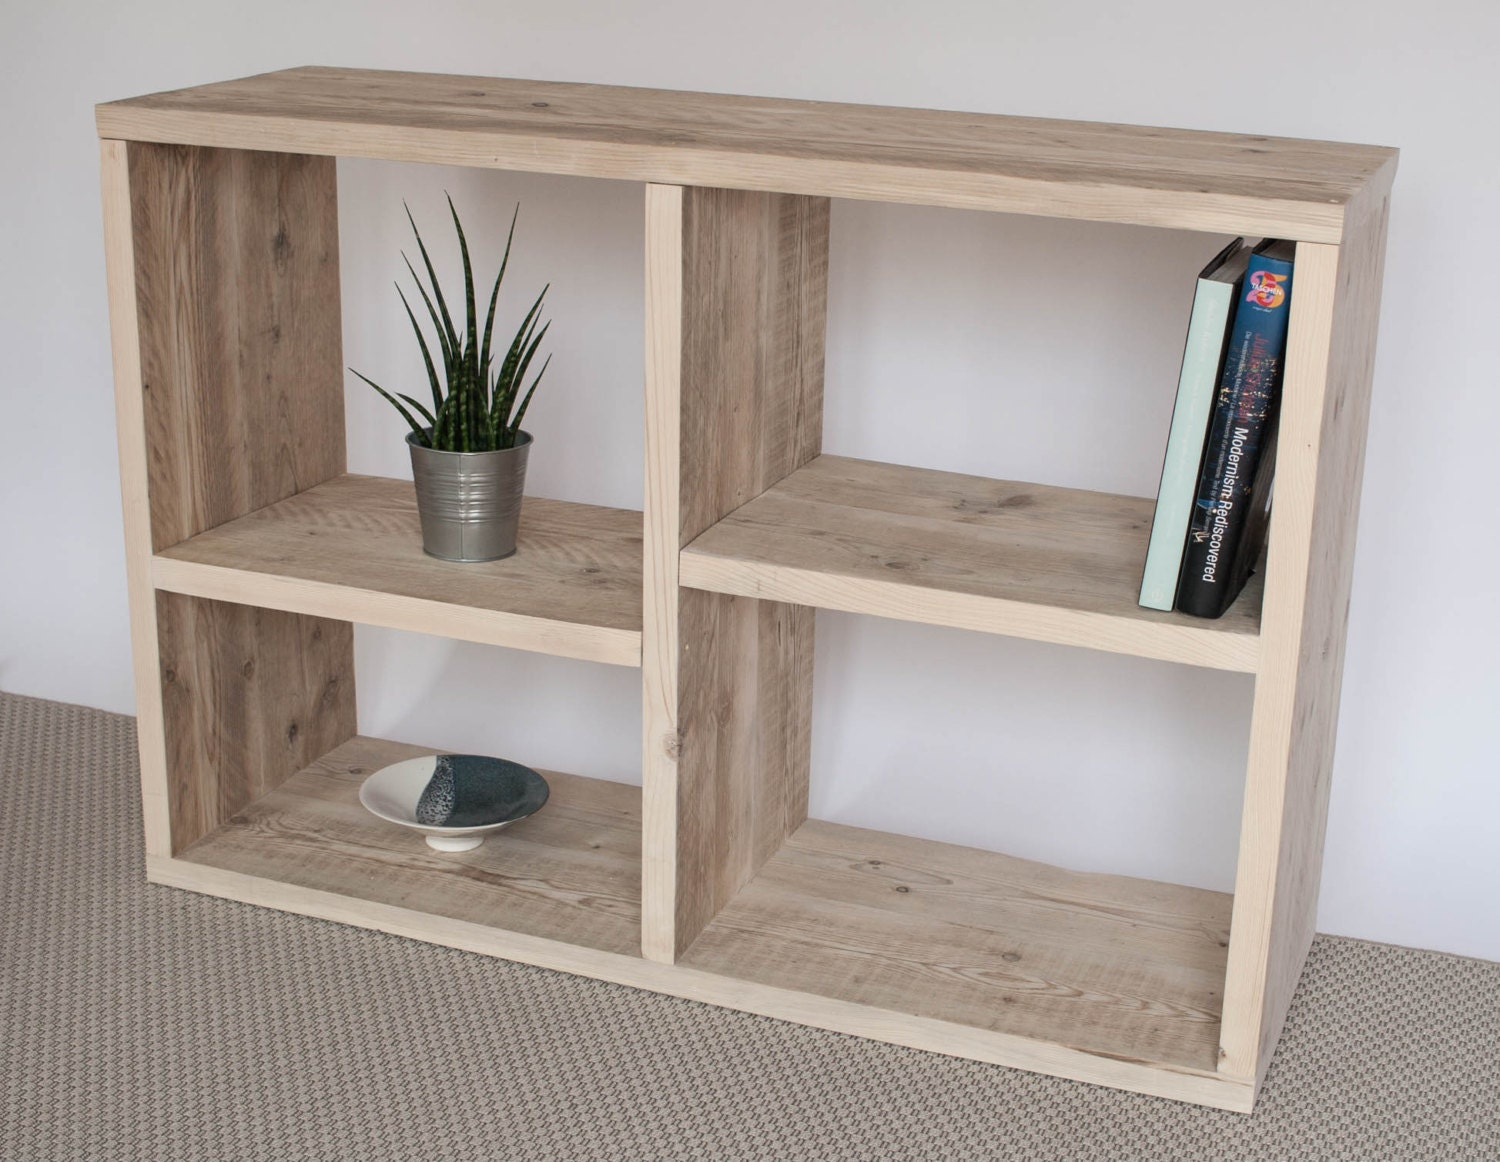 Shaun  Reclaimed Wood Bookcase  Handmade Bookcase  Bespoke Furniture  Display Unit  TV Stand TV Unit  Bookcase